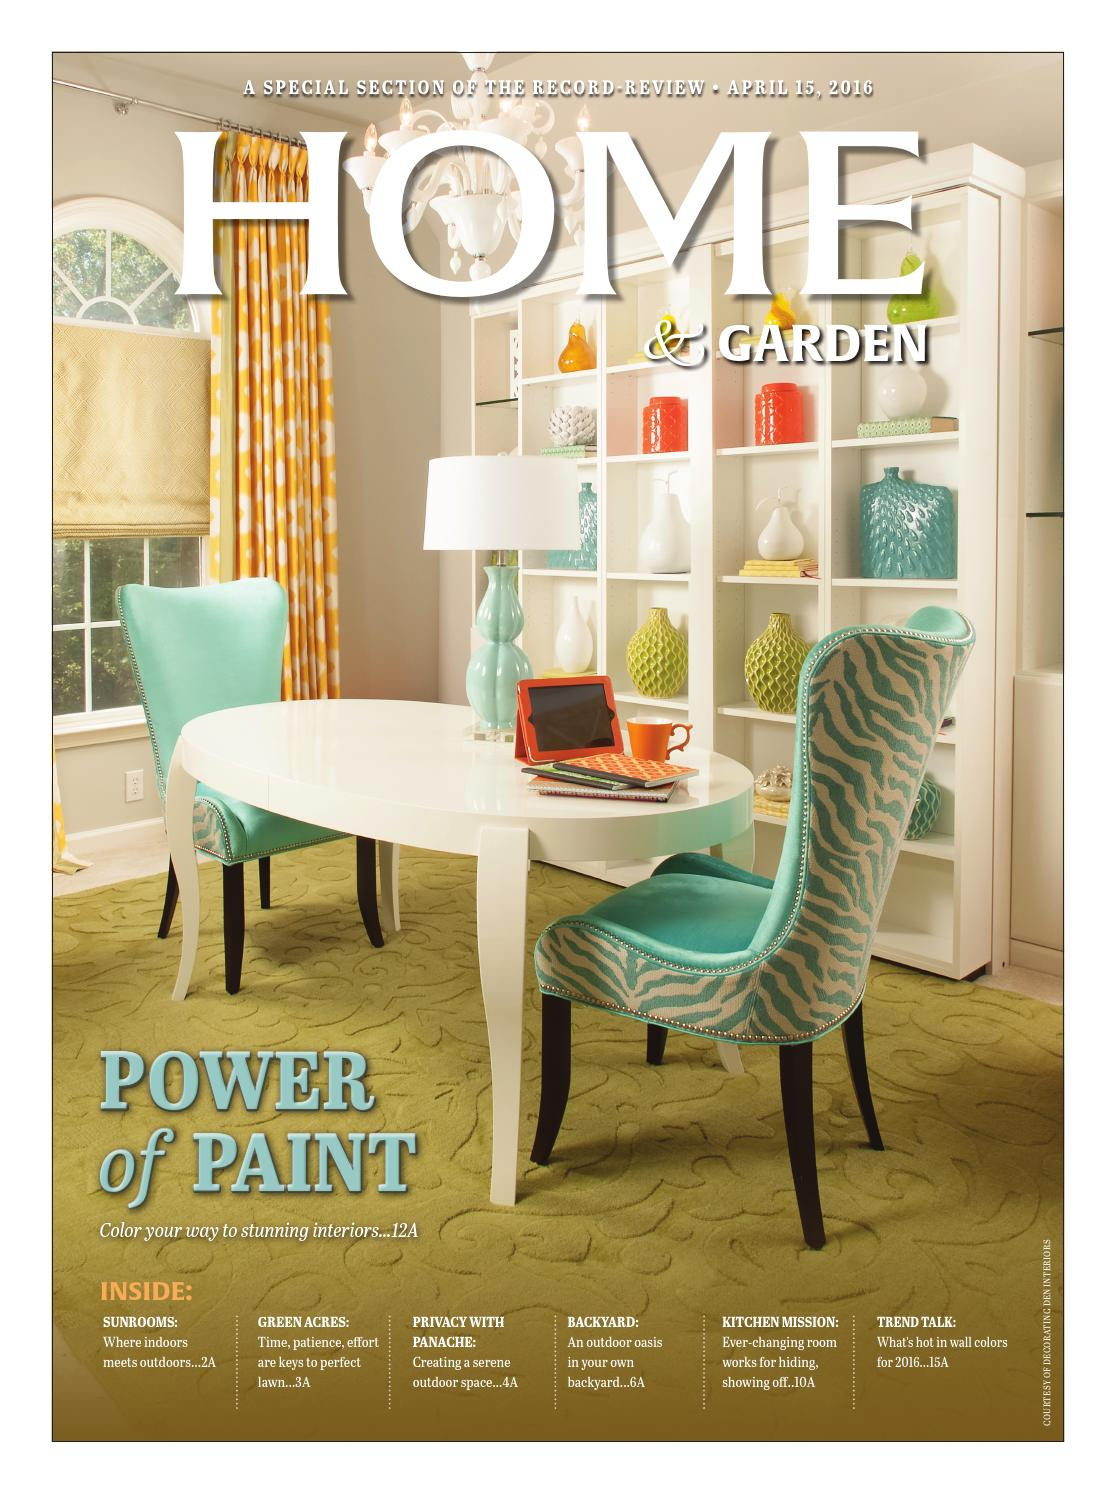 Record Review Home Garden 2016 By The